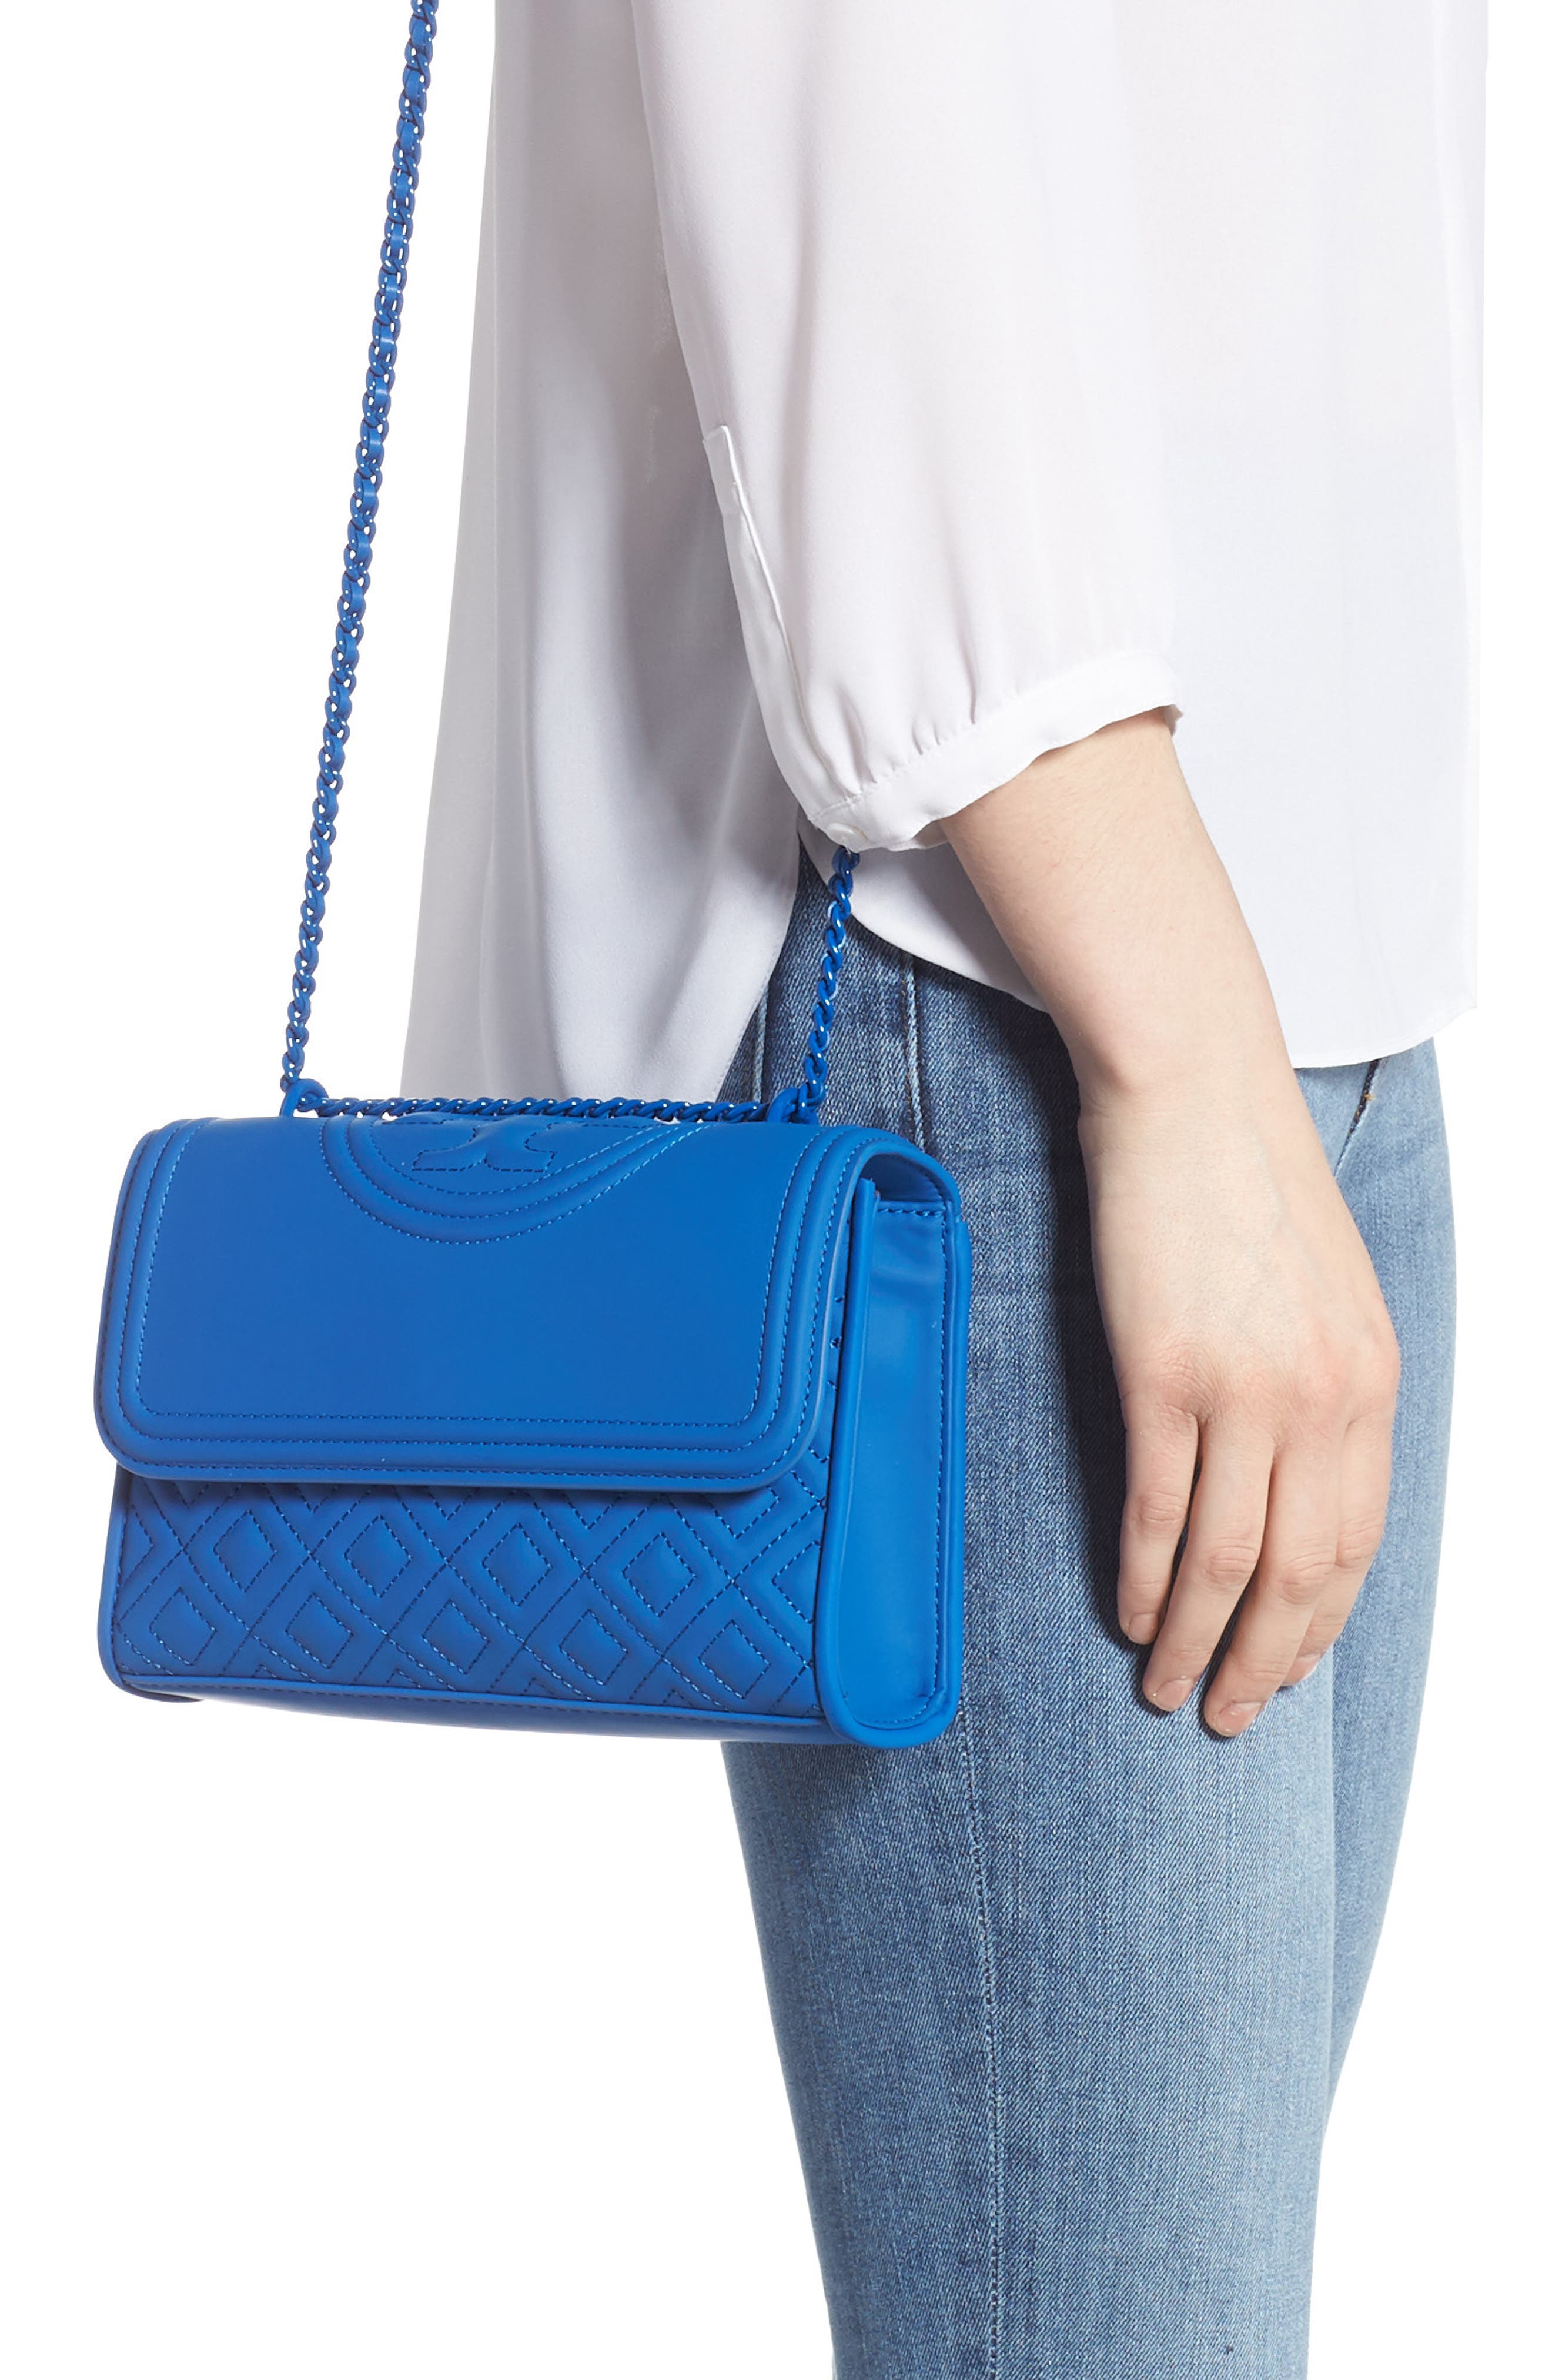 TORY BURCH, Small Fleming Matte Quilted Shoulder Bag, Alternate thumbnail 4, color, MEDITERRANEAN BLUE